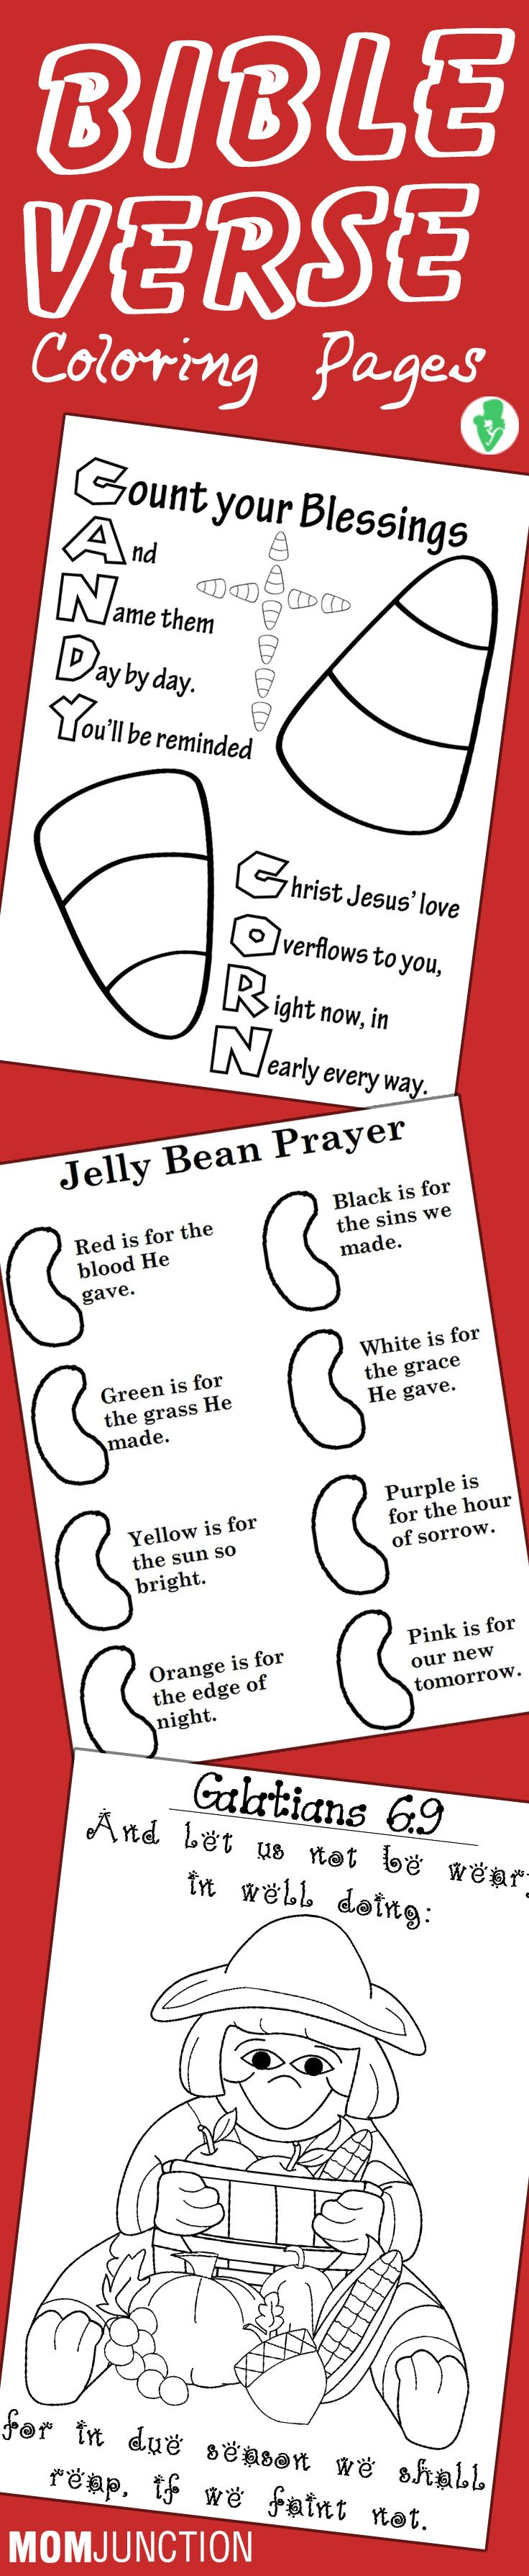 Thanksgiving coloring games online - Top 10 Free Printable Bible Verse Coloring Pages Online